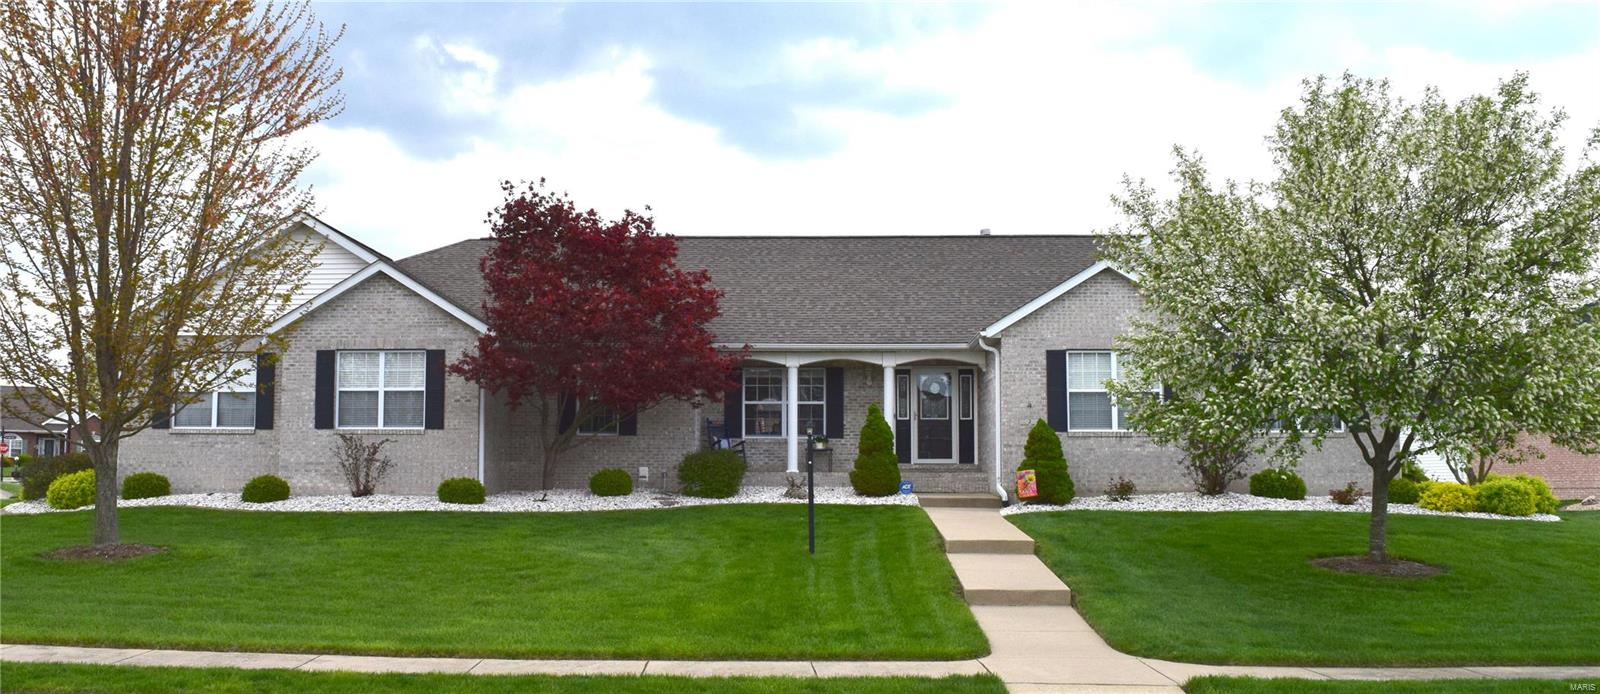 2 Arbor Crest Court Property Photo - Maryville, IL real estate listing